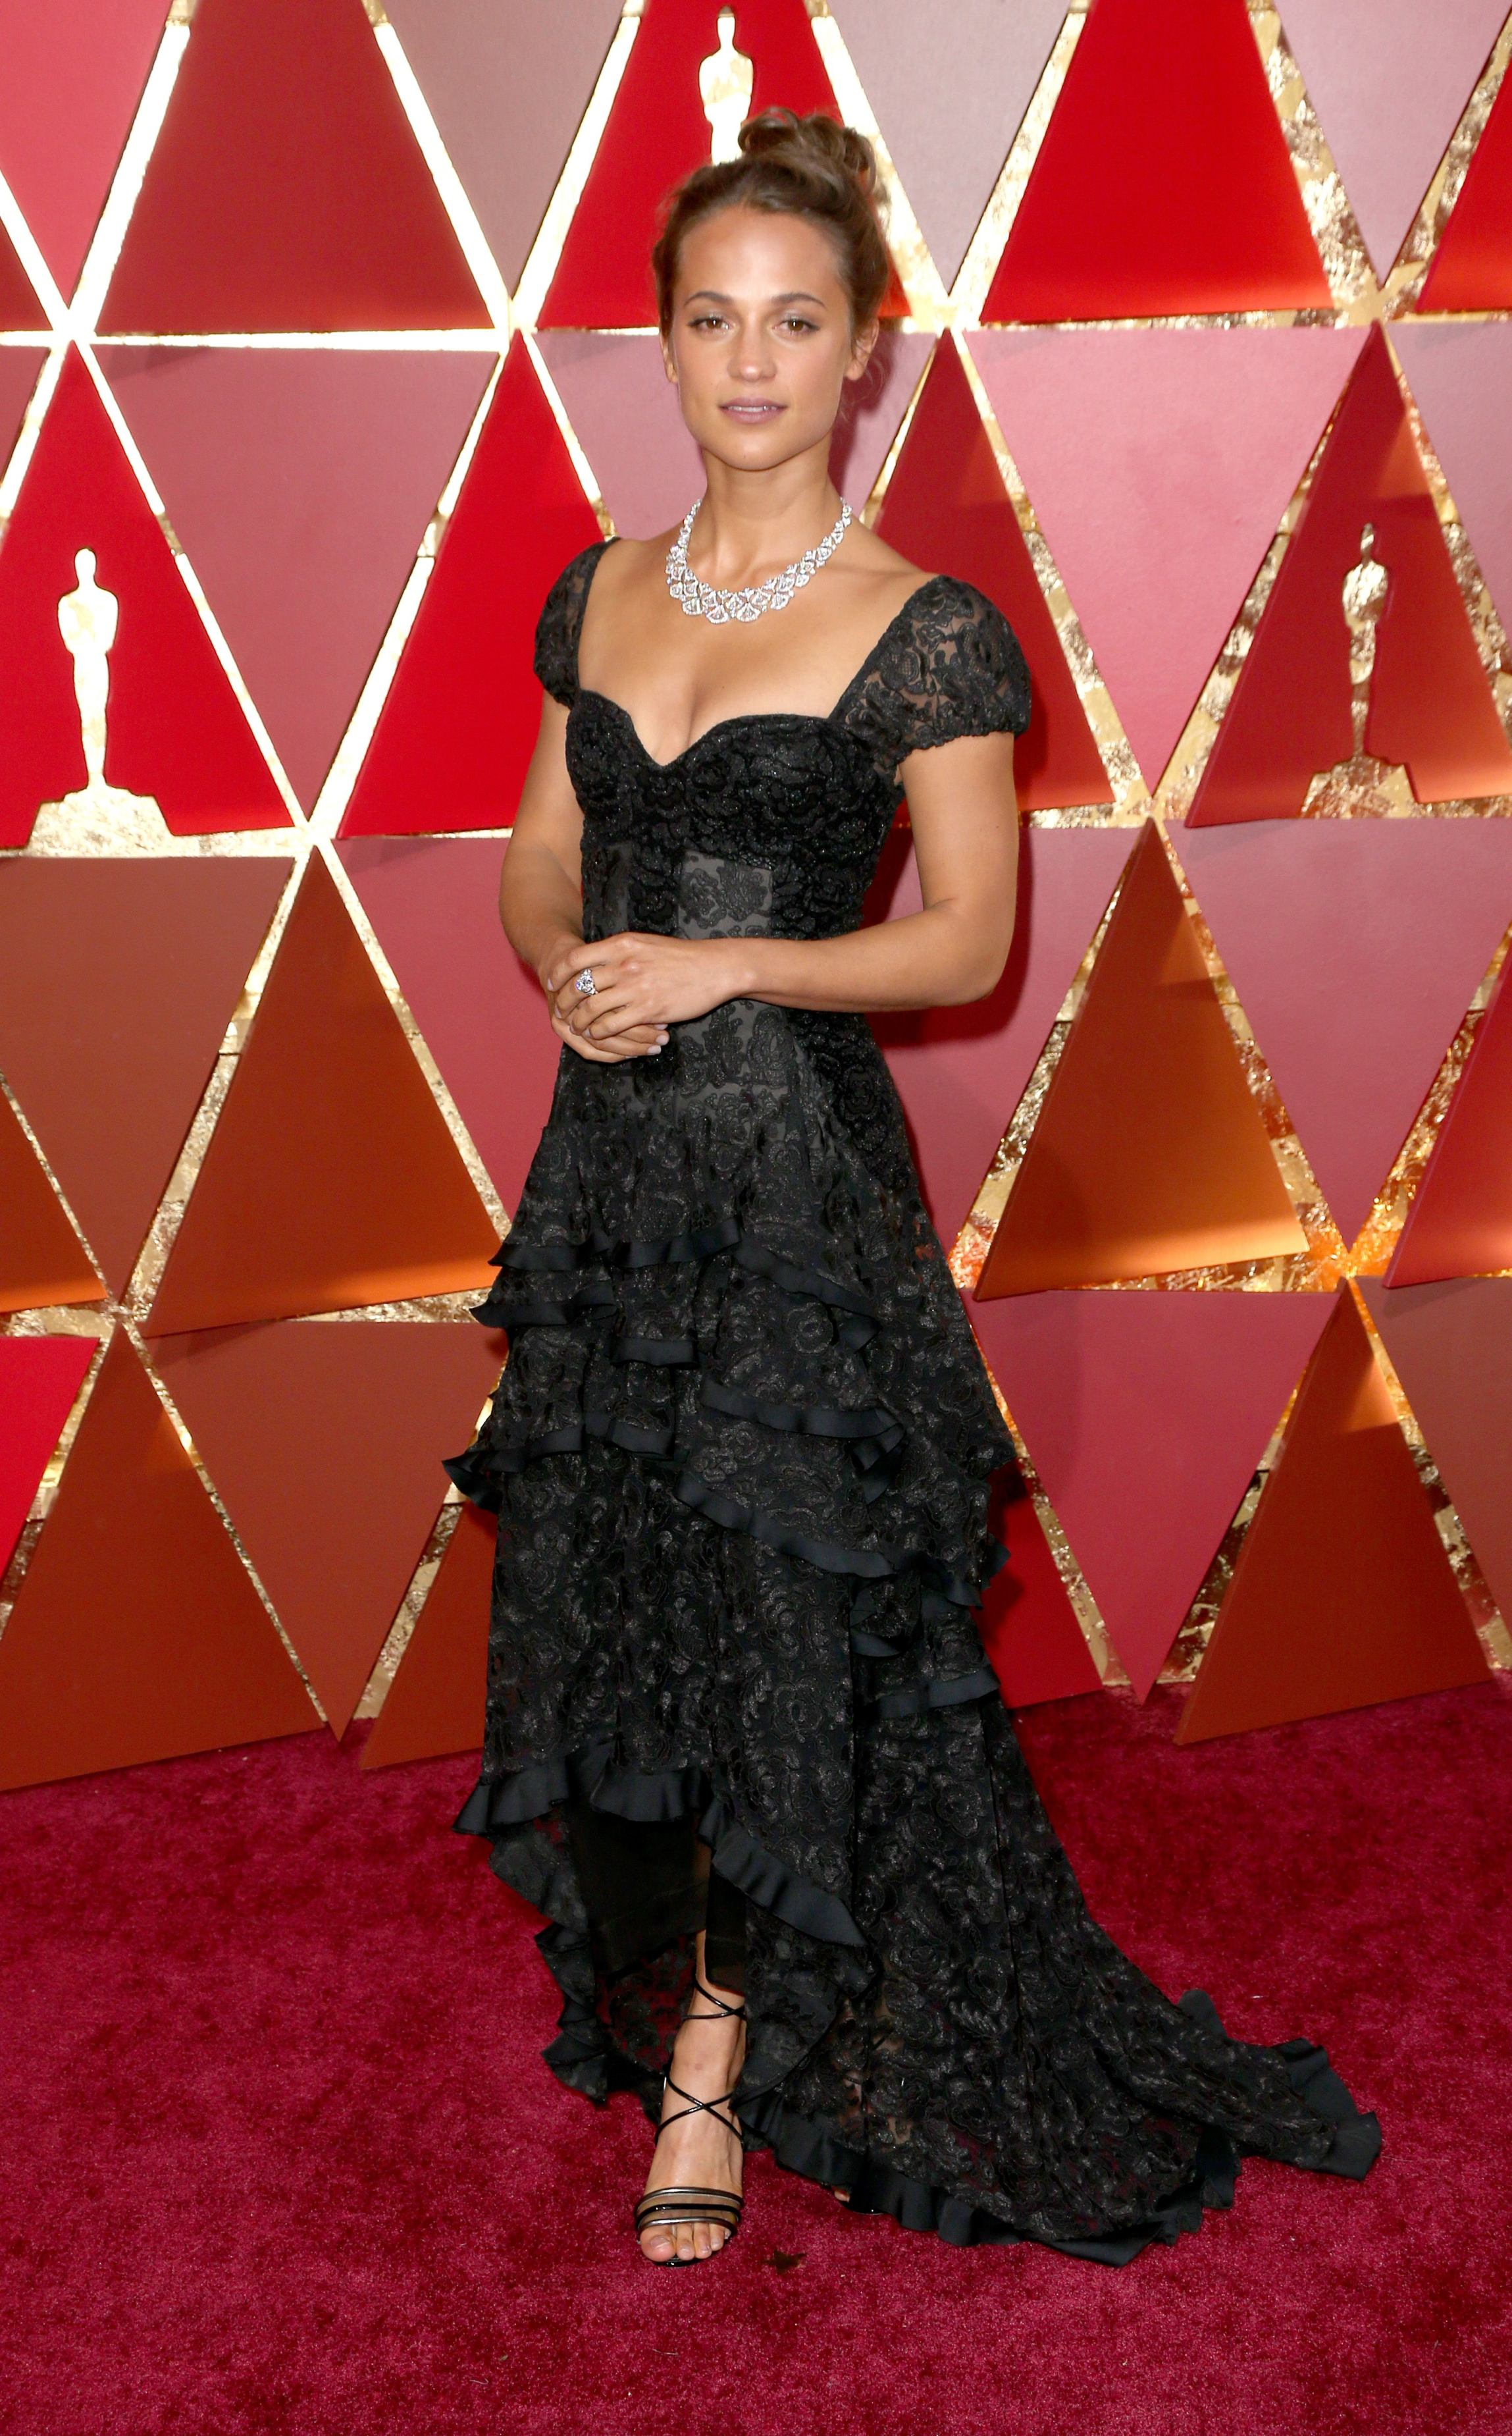 Mandatory Credit: Photo by Jim Smeal/BEI/Shutterstock (8434881ud) Alicia Vikander 89th Annual Academy Awards, Arrivals, Los Angeles, USA - 26 Feb 2017